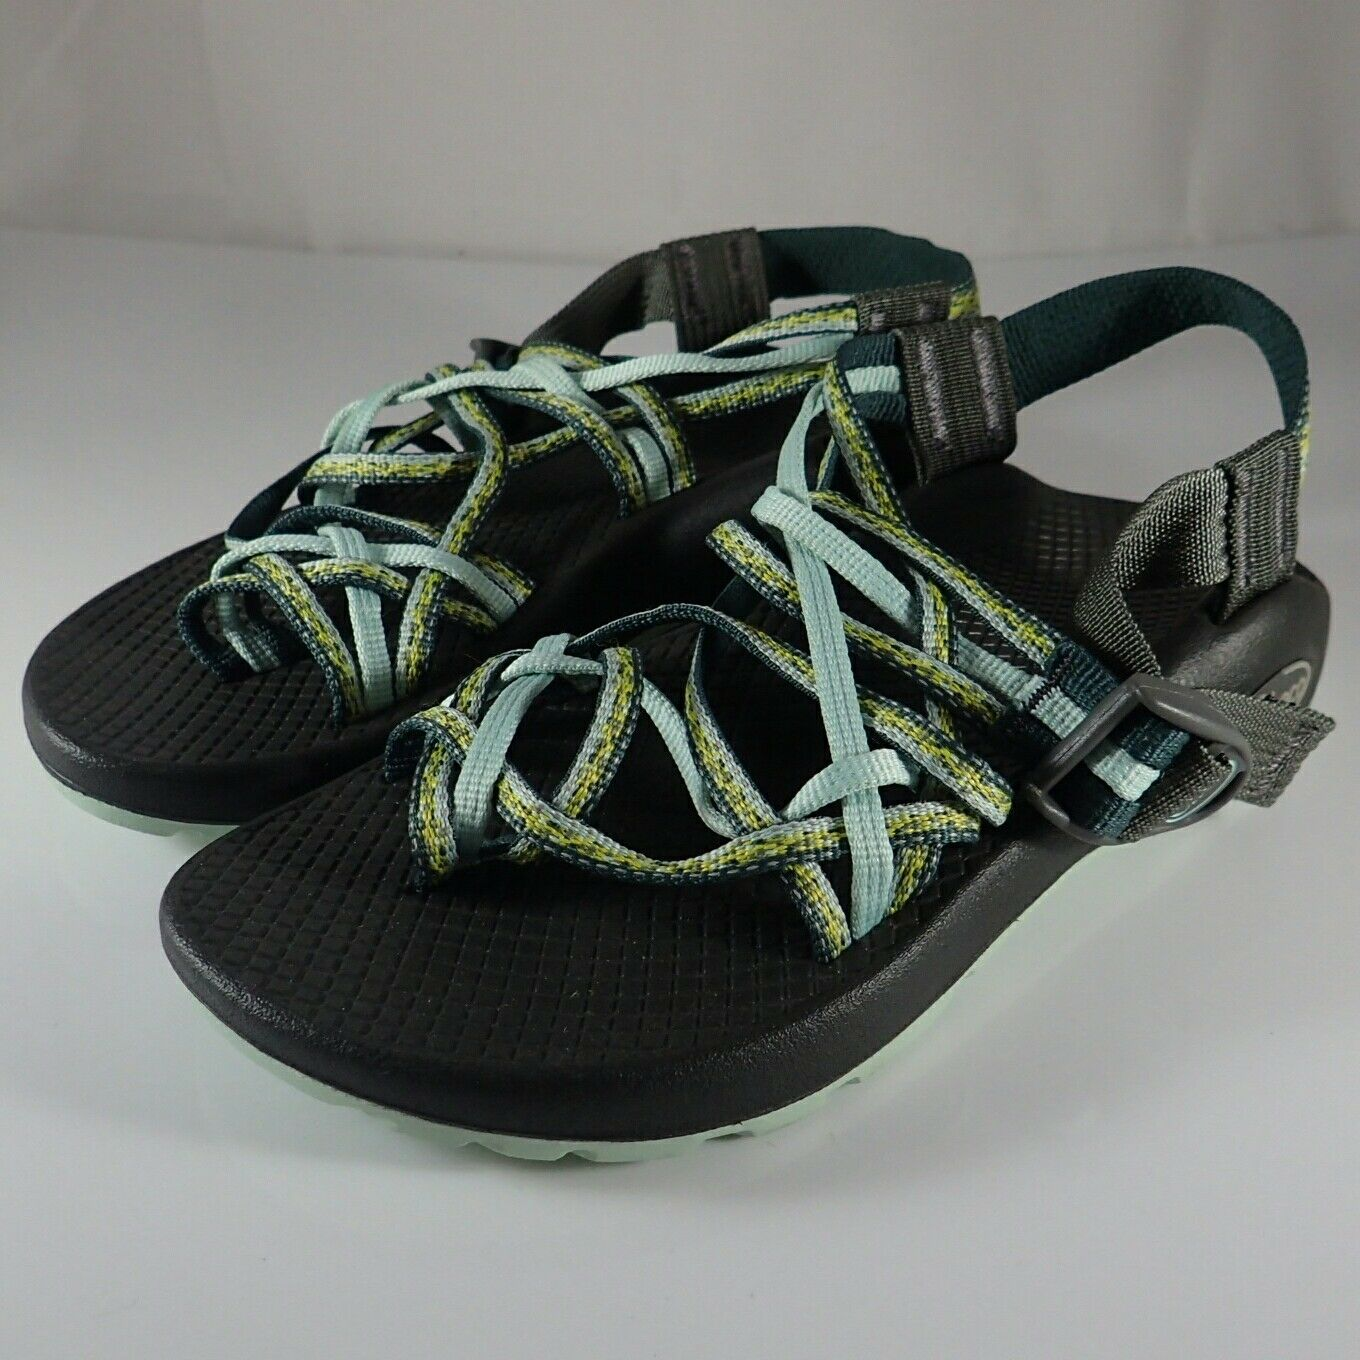 Chaco Green Strappy Sandals 5 - New